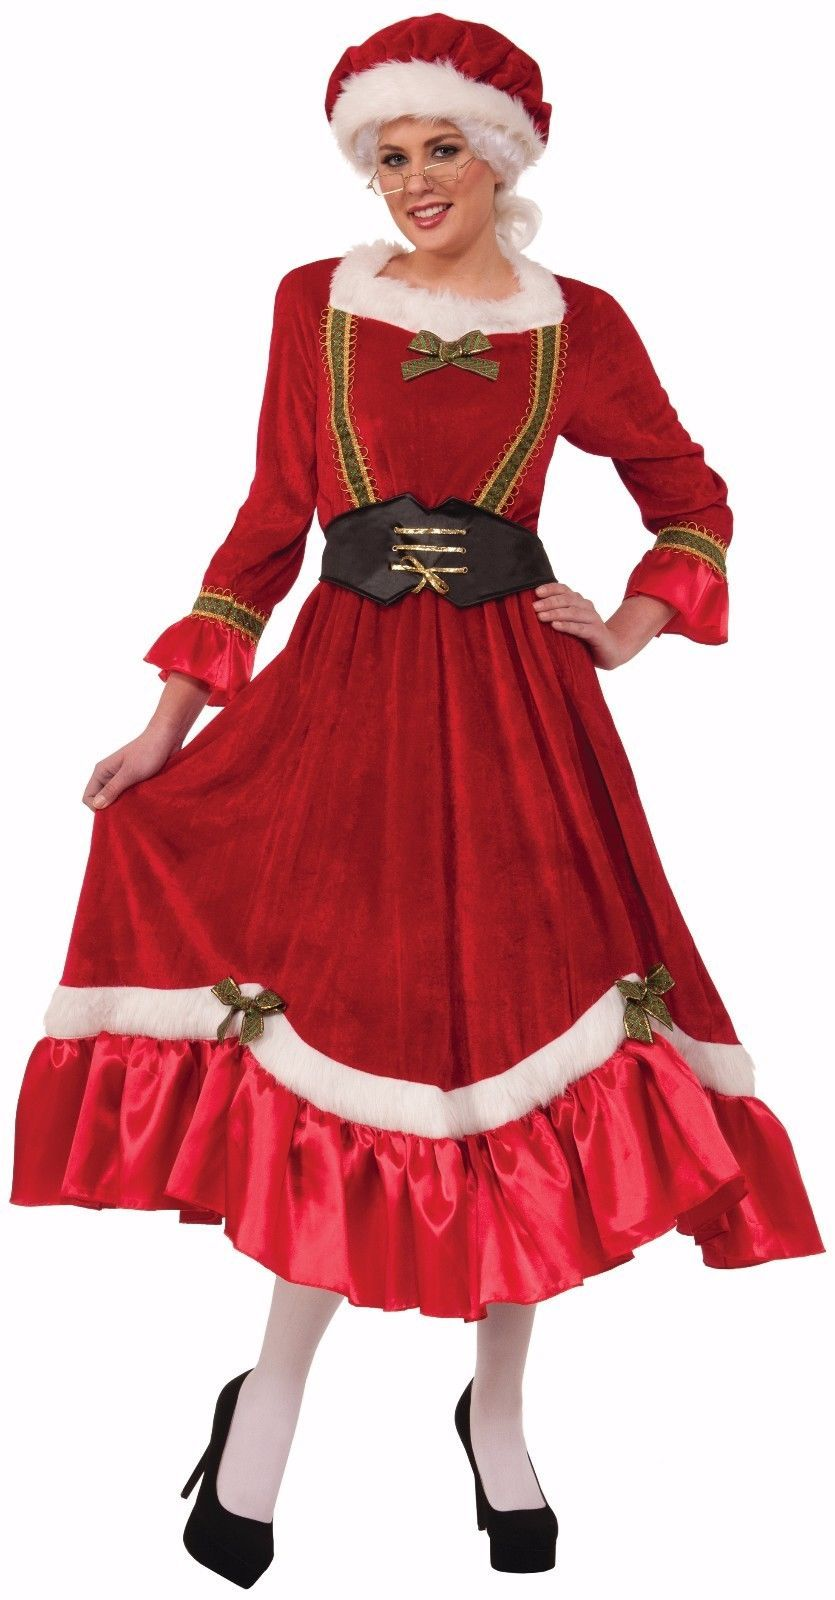 Primary image for Forum Novelties Mrs Santa Claus Christmas Xmas Holiday Womens Costume 73872